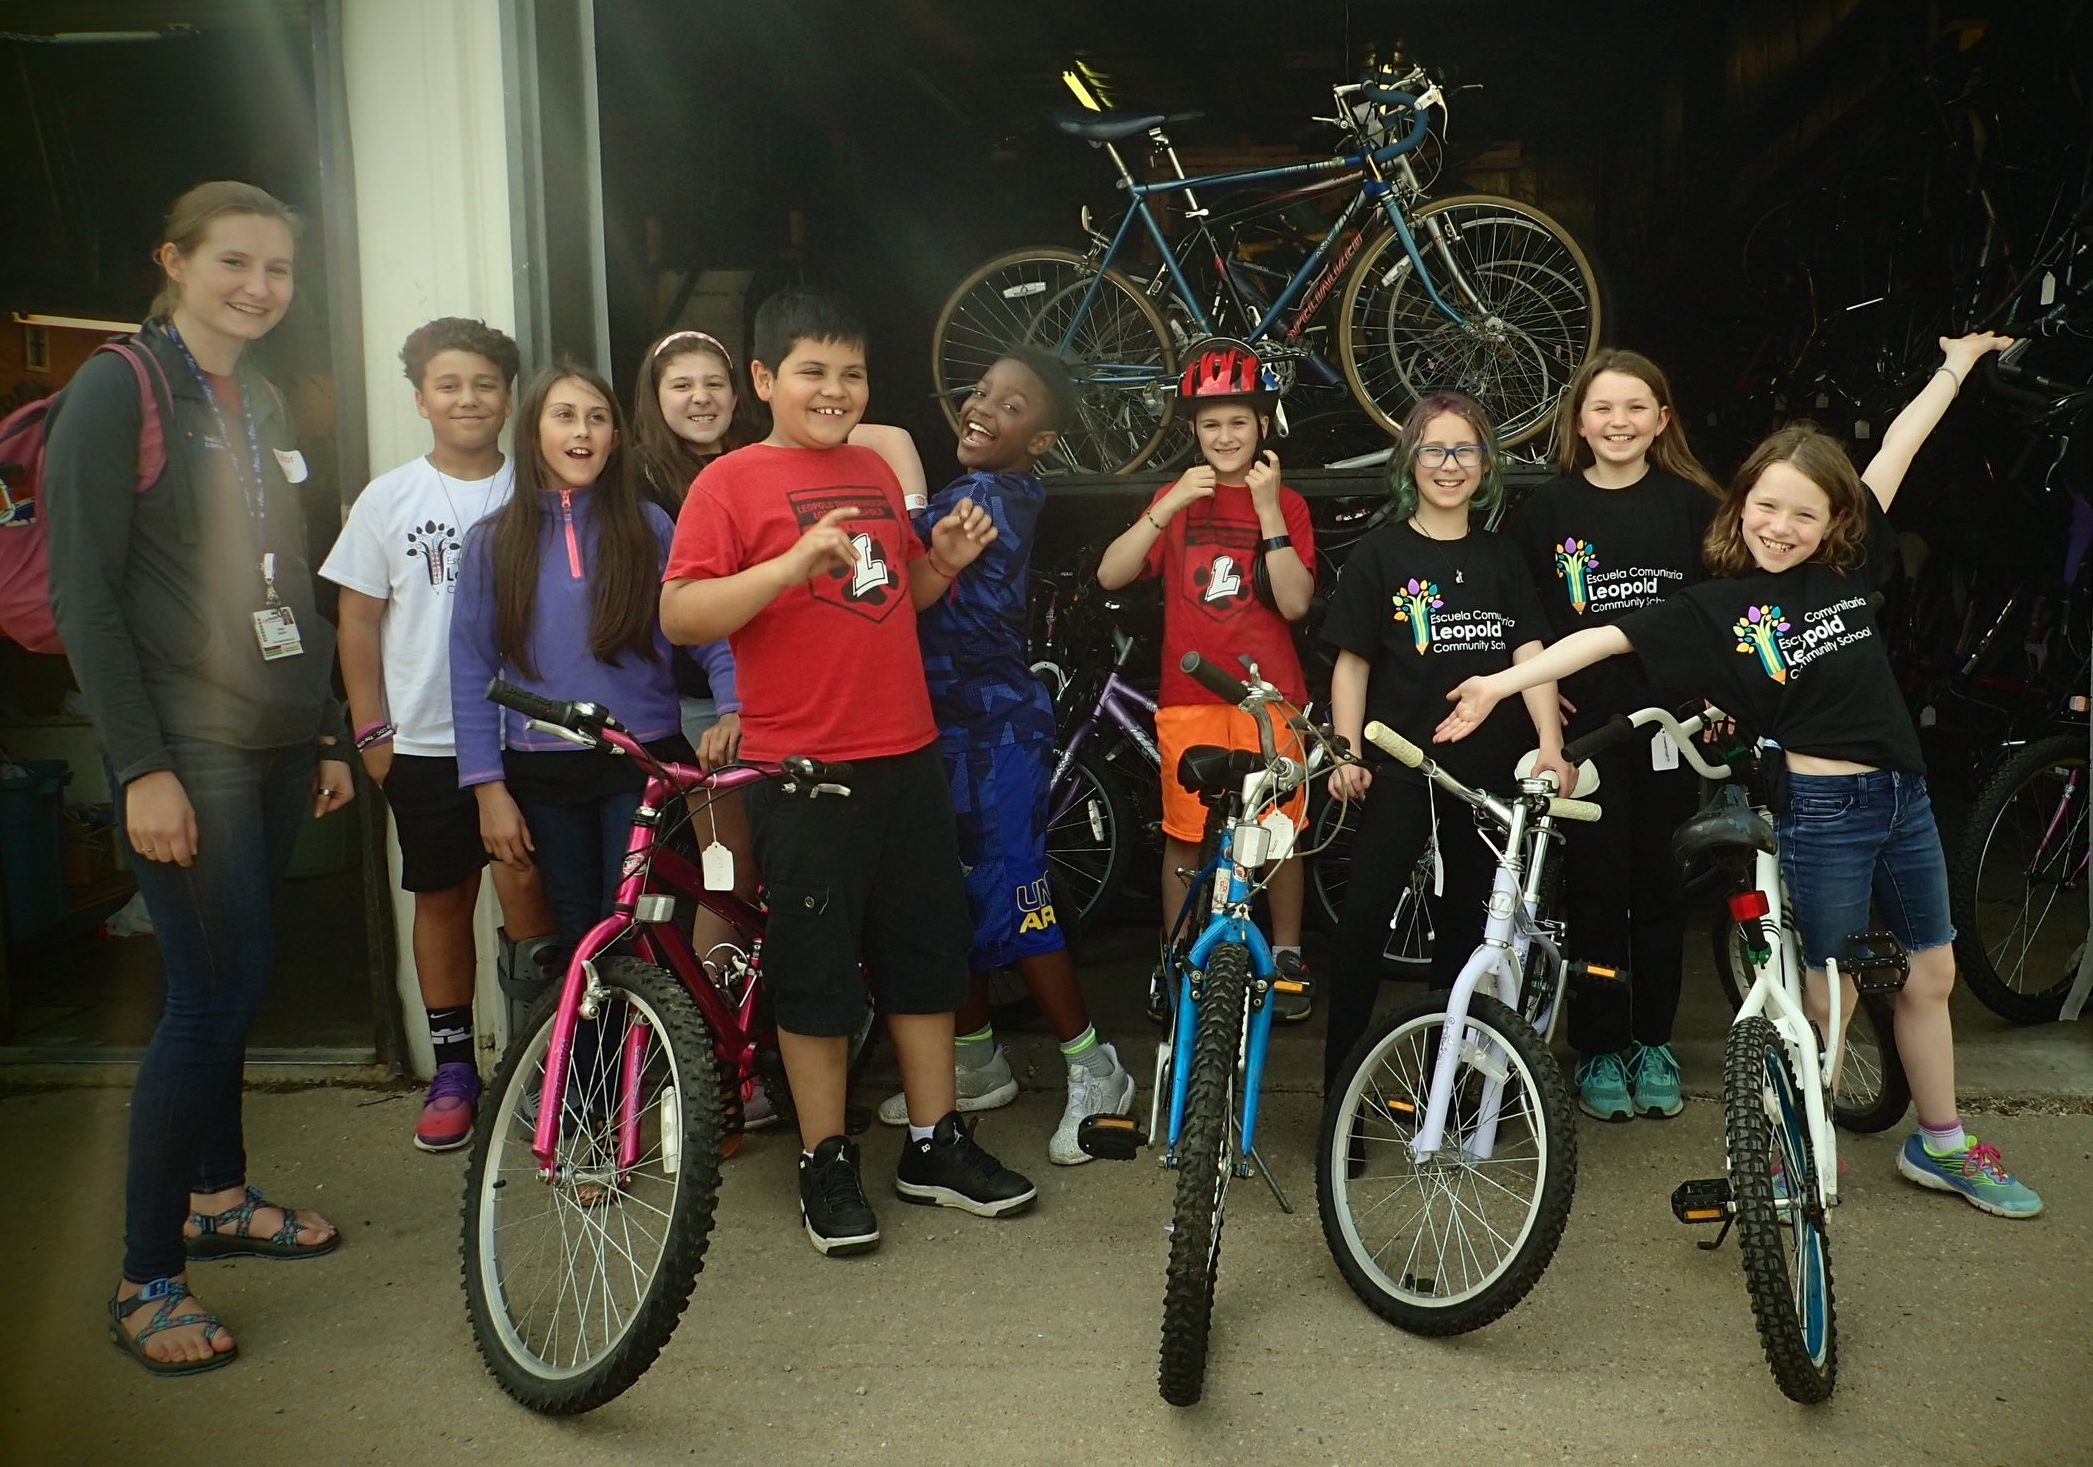 """The students in the Leopold Student Advocacy Team (self-named Leopold Community Leaders) came by to pick out their bikes today. They are students that were selected by their teachers as being influencers in the classroom. The goal of the club is to identify things in their neighborhood that prevent people from being active, then do projects that address some of those needs. The projects that were identified this year include: traffic calming for bike to school day, painting lines for a football field behind the school, and painting benches in front of the school. In addition to their time in the group, the students are also responsible for doing community service outside of the club. The 3rd and 4th graders have been meeting with teacher facilitators of the club during their recess time to help with a variety of projects throughout the school, such as cleaning up garbage on the playground, shelving books in the library, and sorting recycling. The 5th graders are completing their additional service hours by participating in the """"Reading Buddies"""" program, where they meet with a kindergartner each week and read with them. Some of the students are also going above and beyond by doing service outside of the club by cleaning up garbage at their local park, cleaning up dog poop at the dog park, and even making blankets for animals at shelters!"""